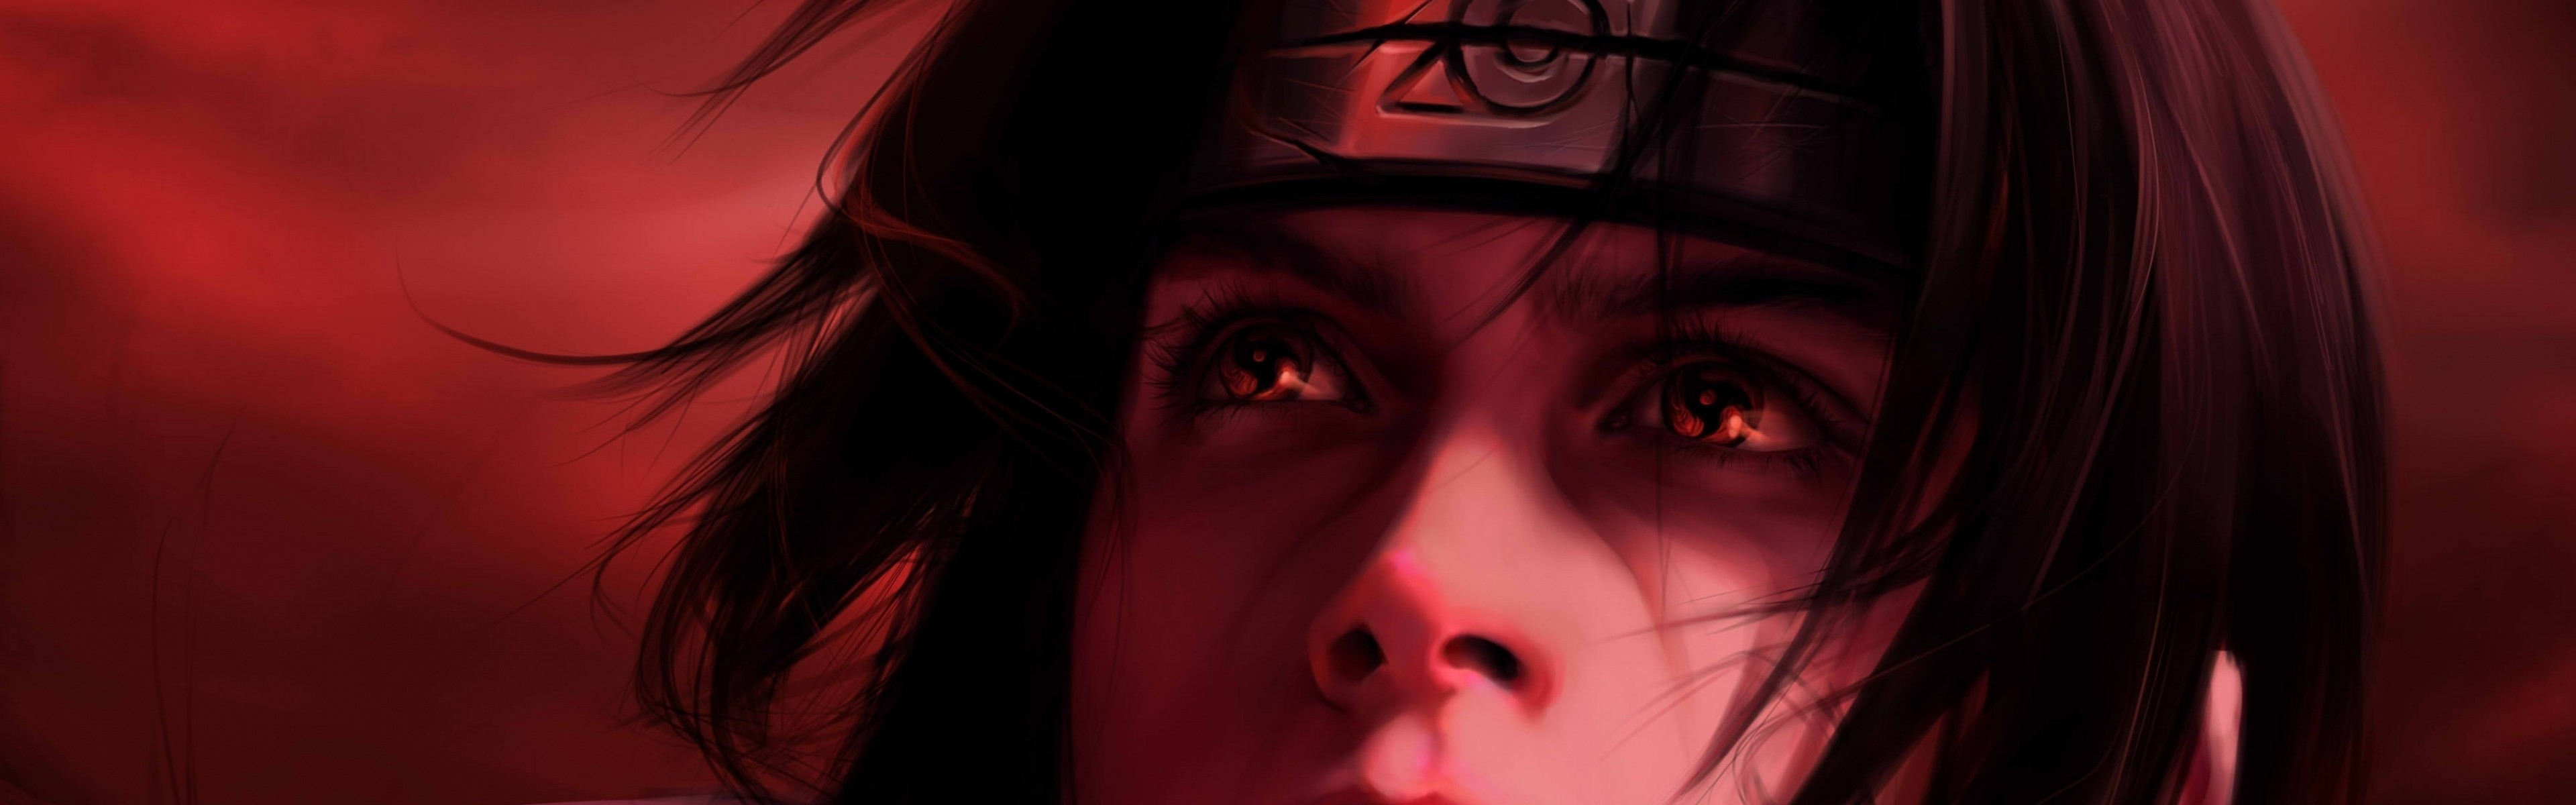 Wallpaper Red 2560x1440 >> Itachi Uchiha Wallpaper Sharingan ·①